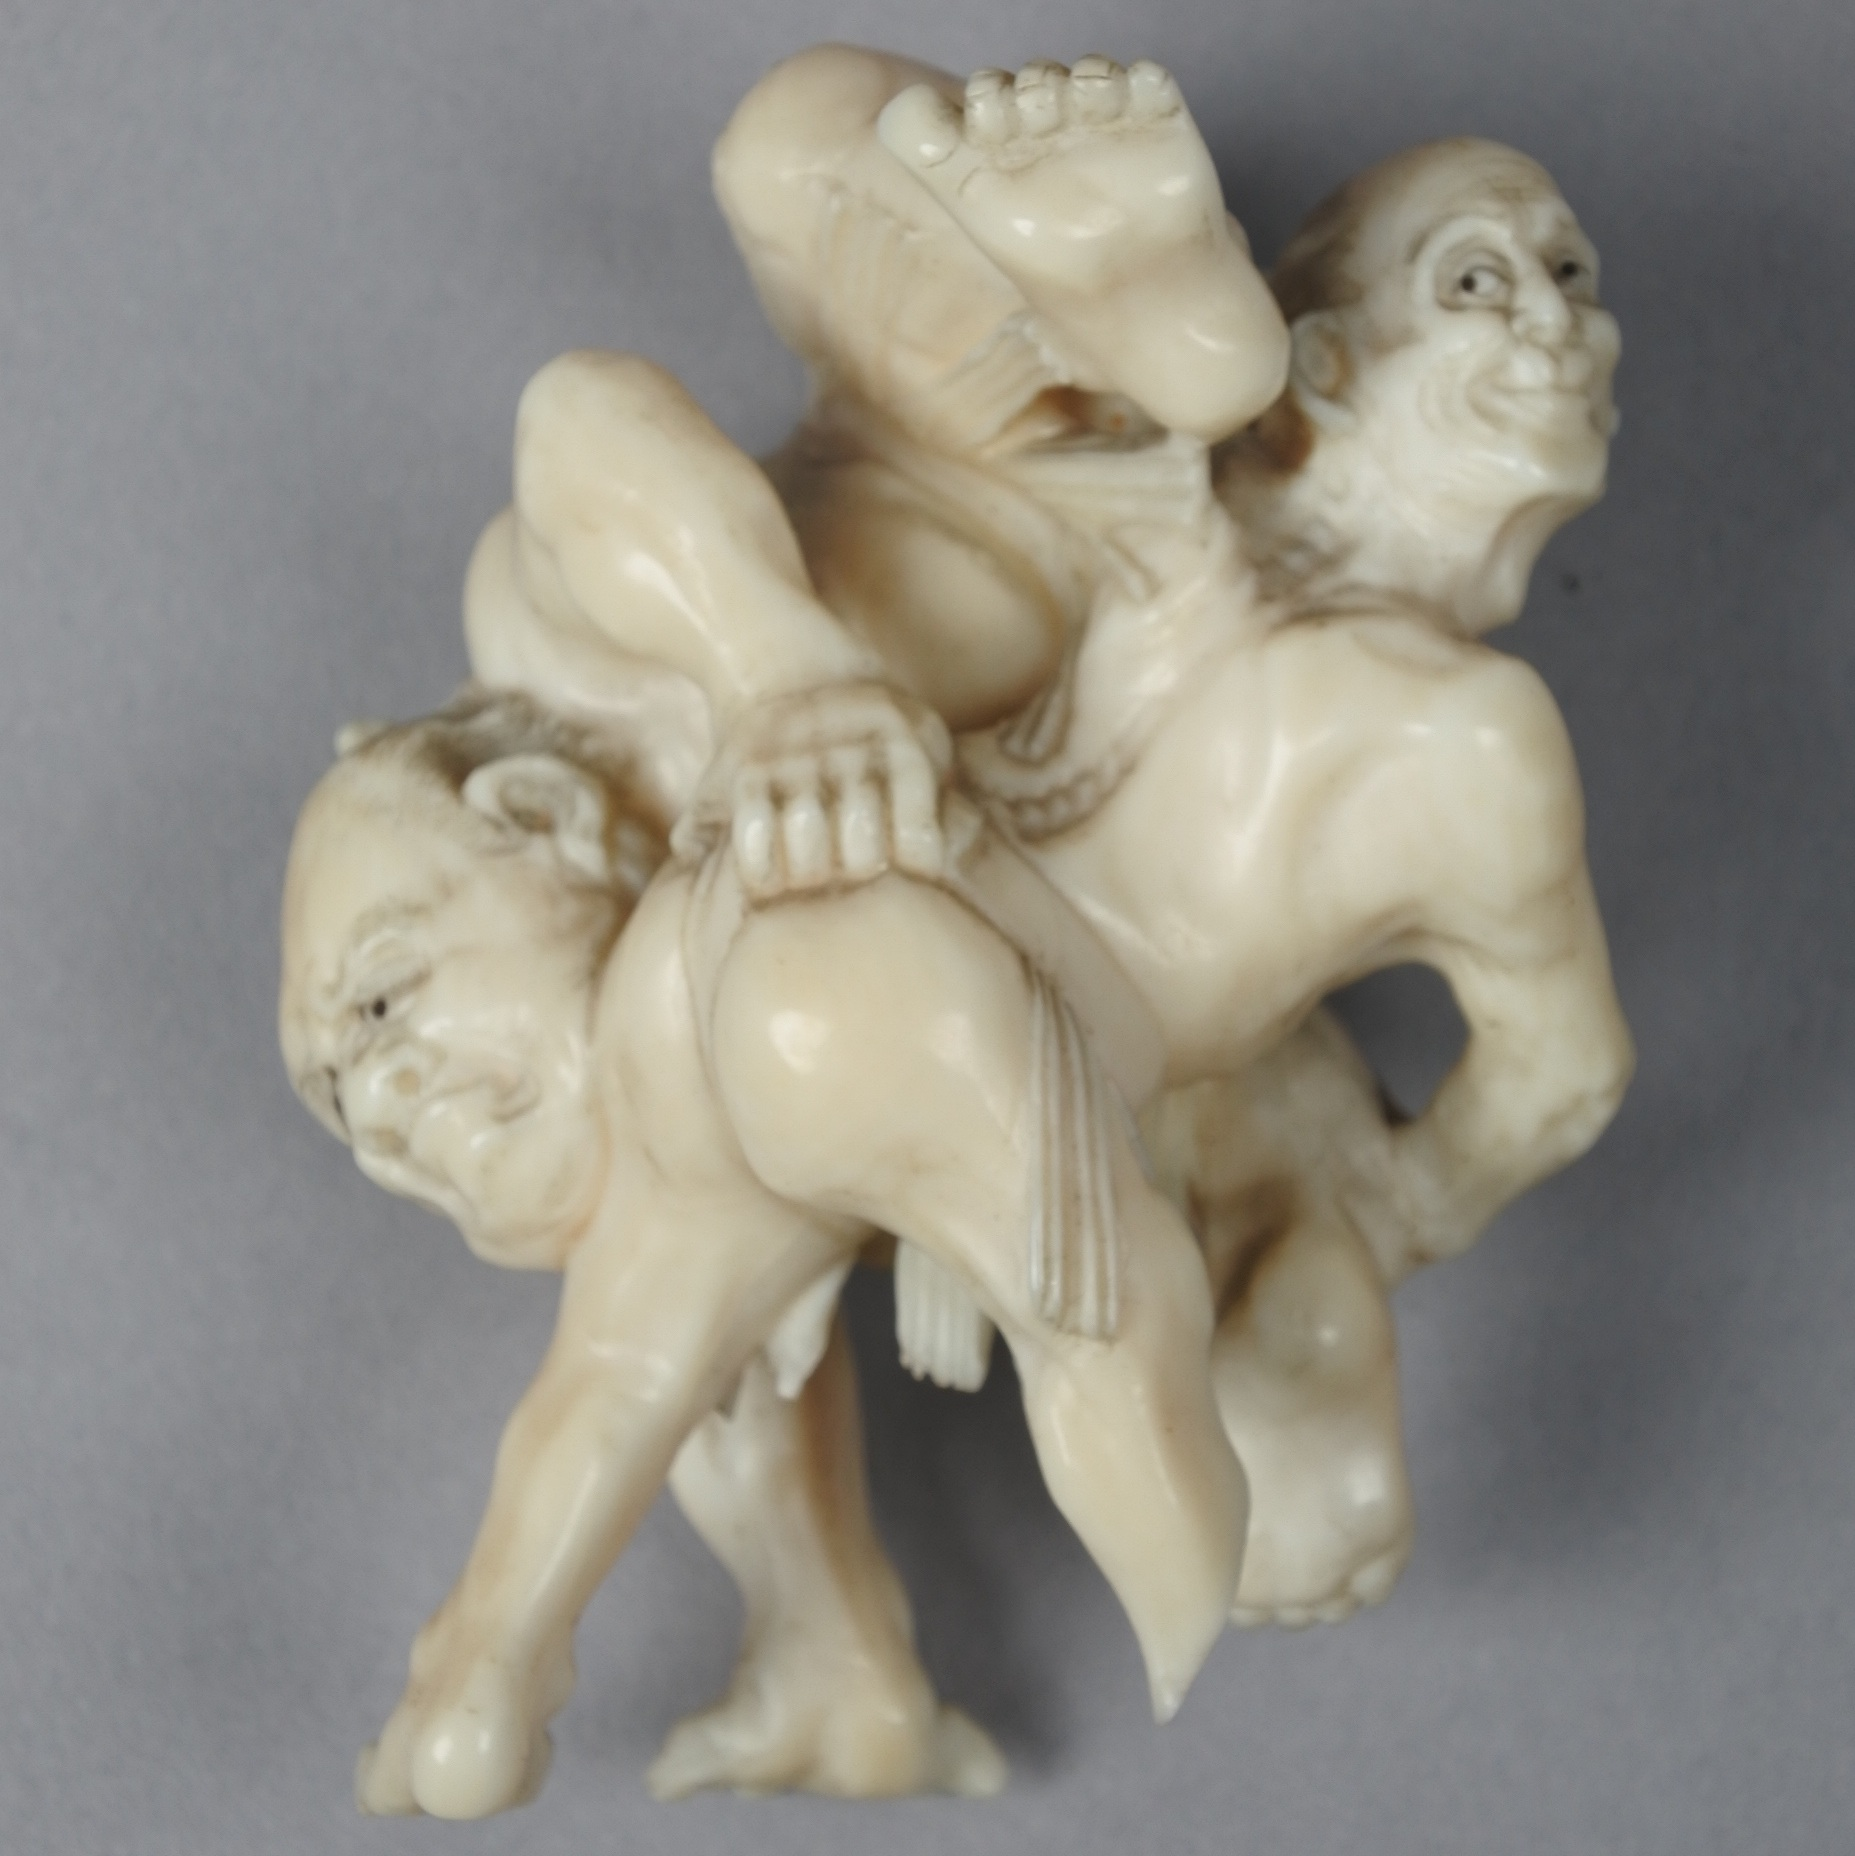 Netsuke - Before Treatment